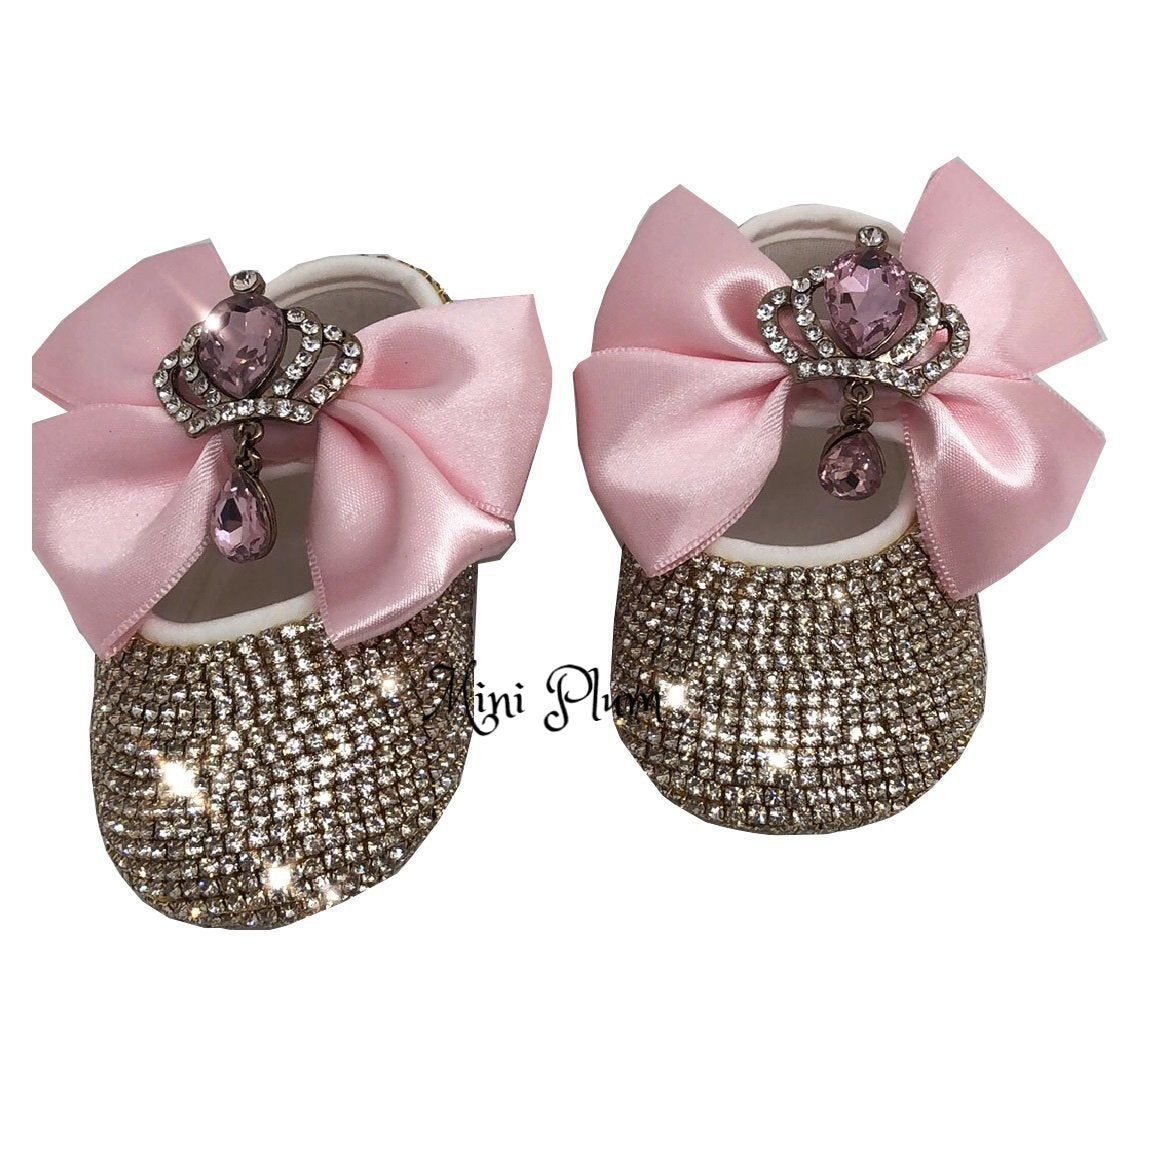 3c4f8a5f0cb78 Personalised Baby Girl Christening Gift Shoes in Pink